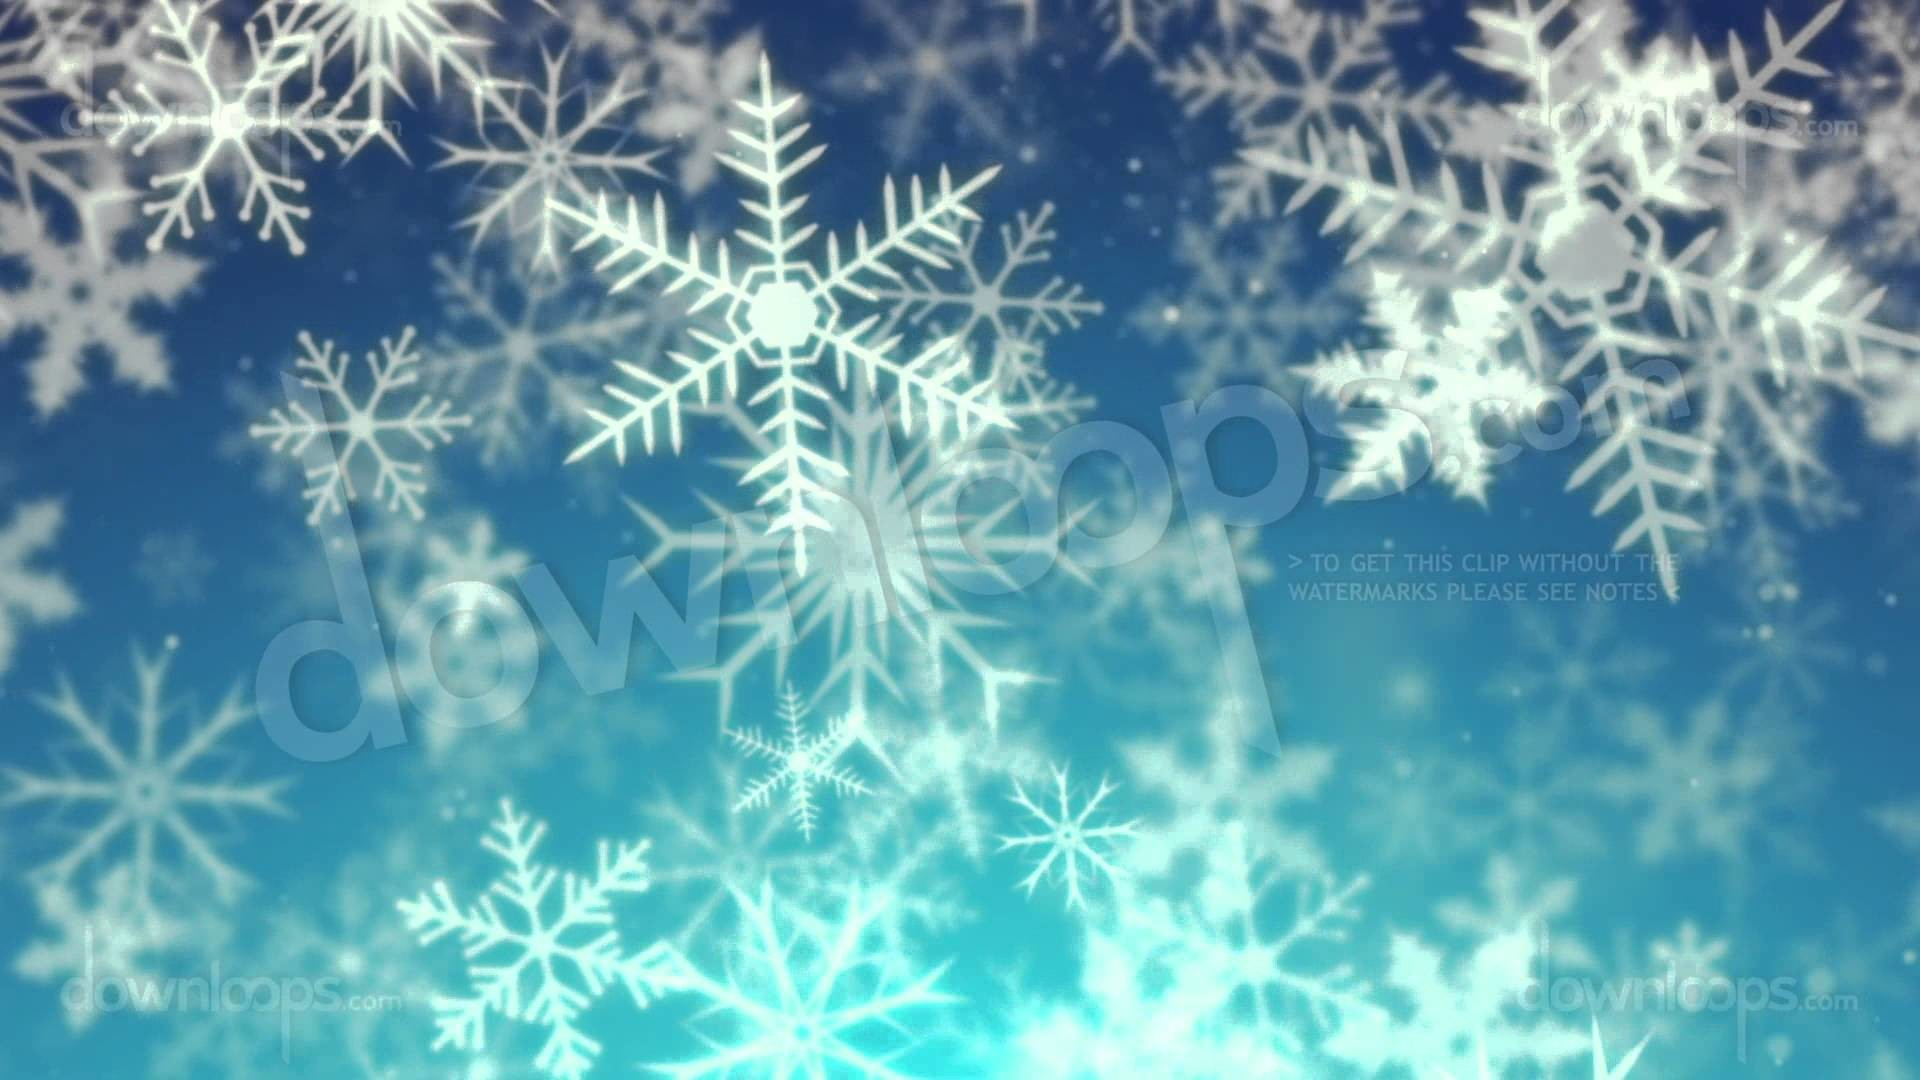 Live 3d Wallpaper Snowing Falling Snow Animated Wallpaper 57 Images